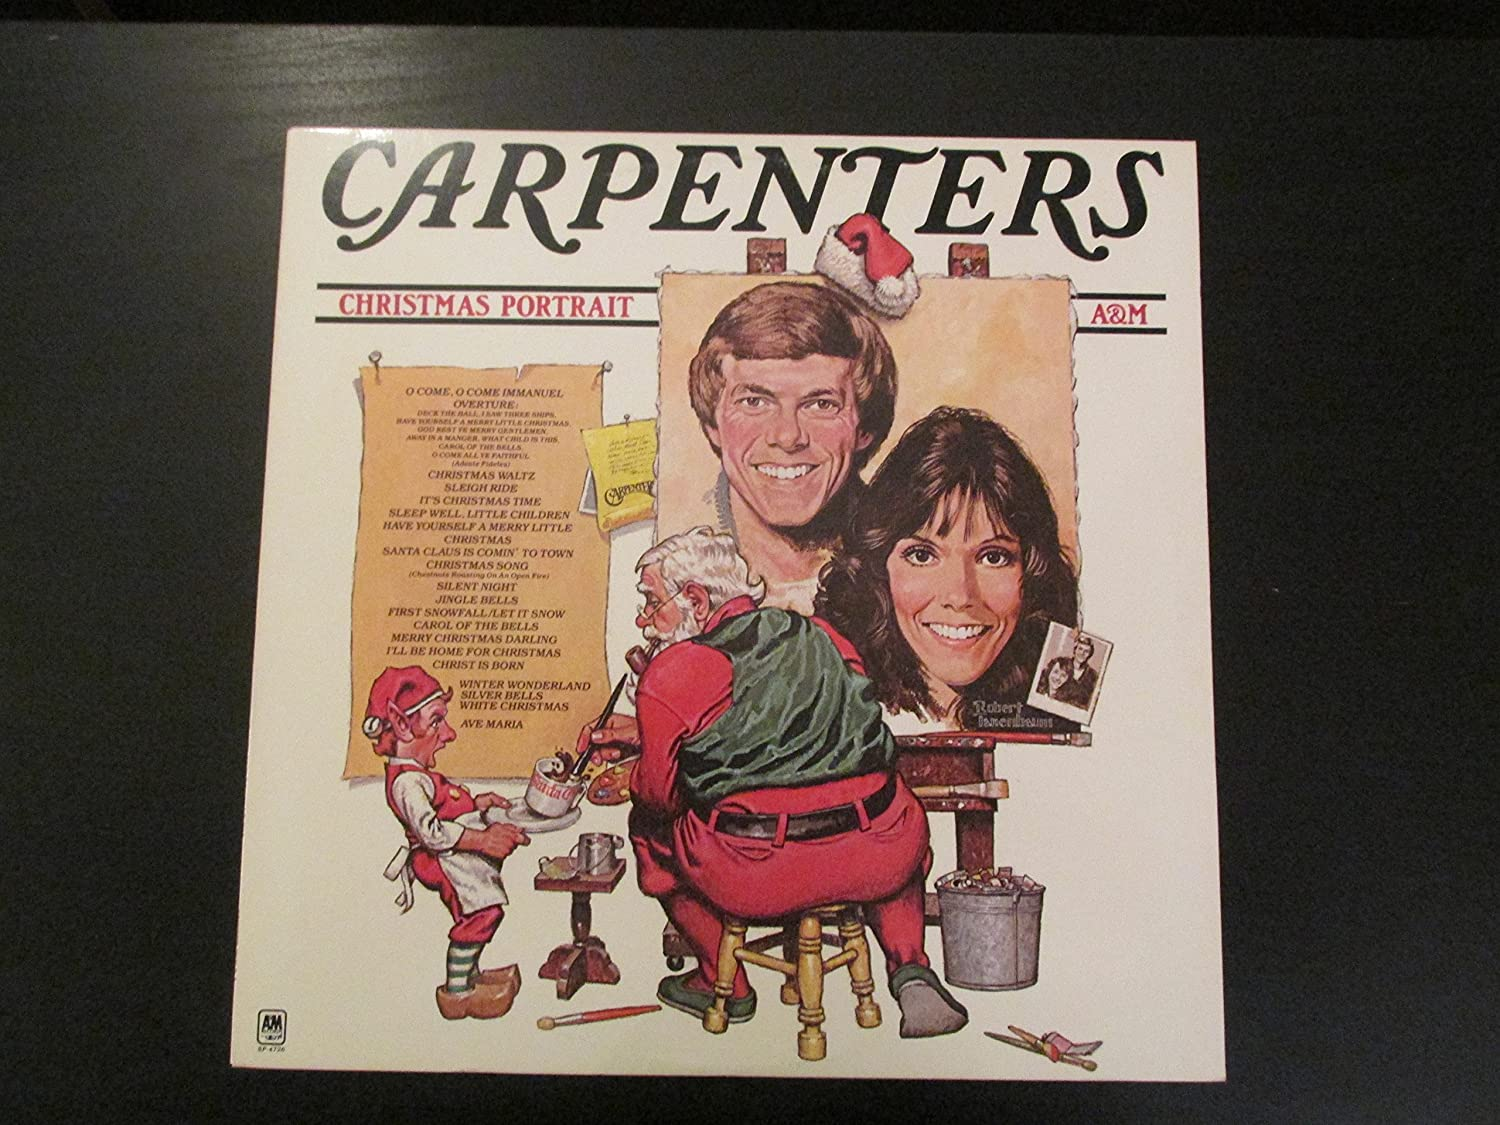 carpenters carpenters christmas portrait amazoncom music